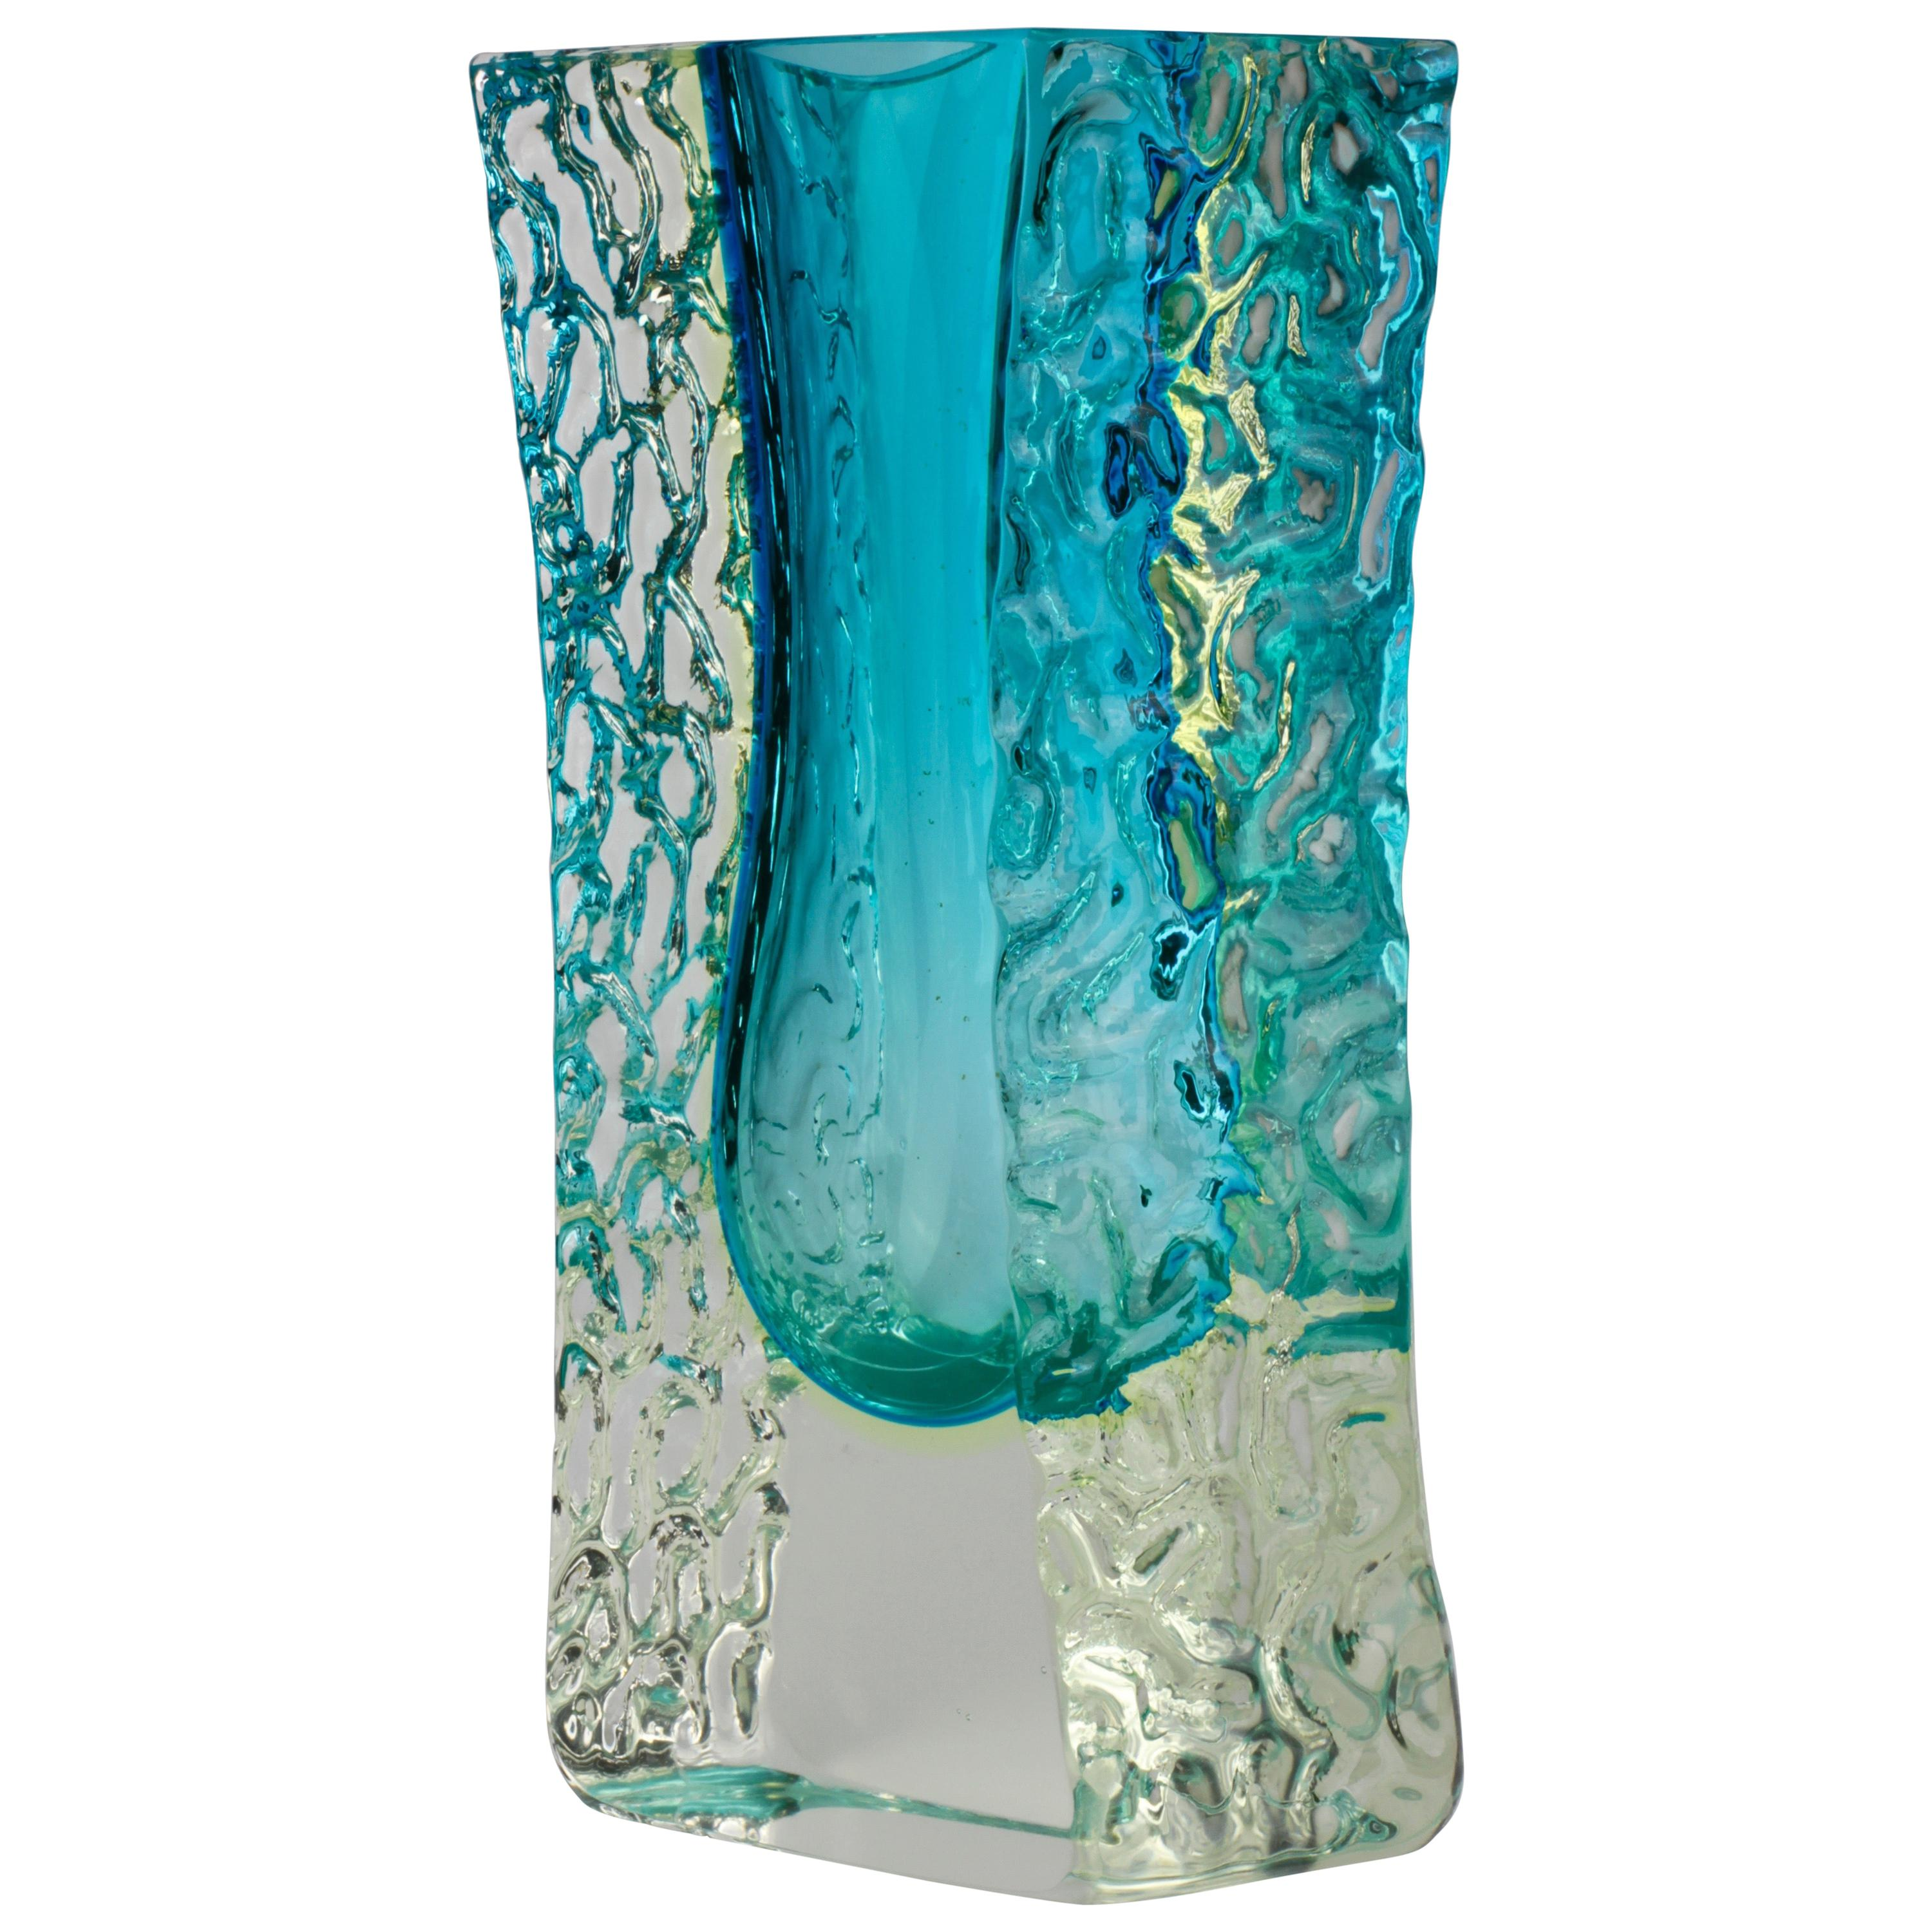 Vintage Textured and Faceted Murano 'Sommerso' Blue Ice Glass Vase